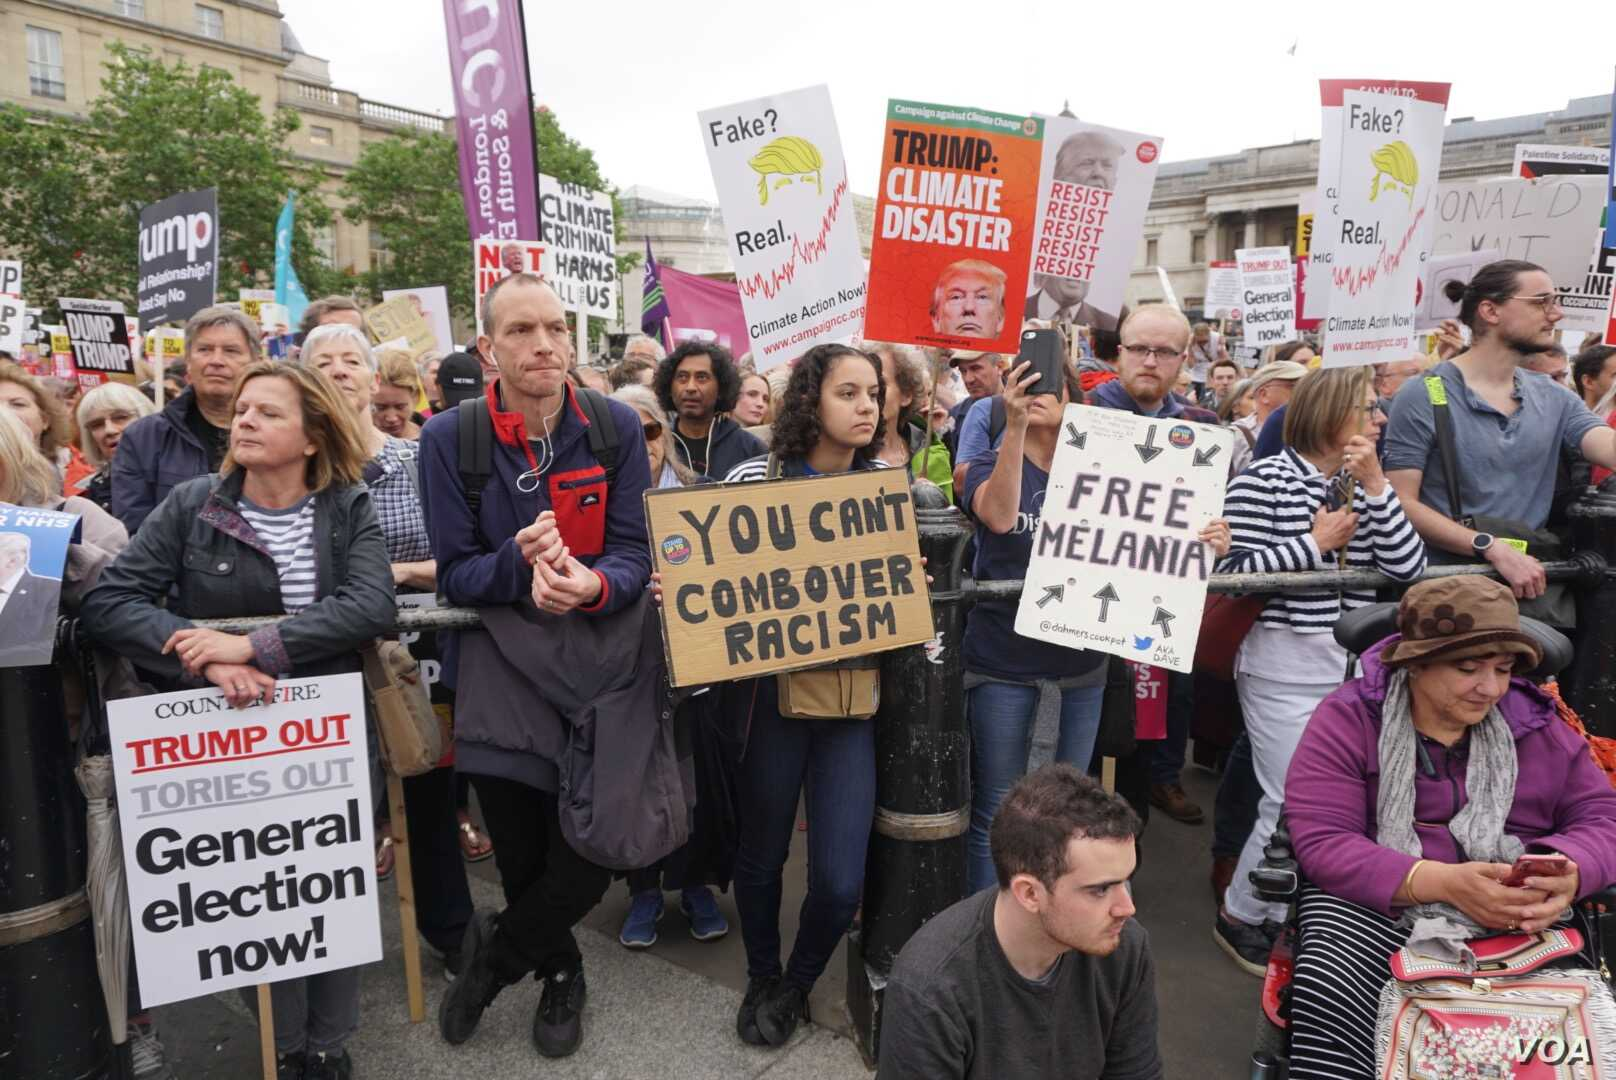 Thousands of anti-Trump protesters gathered in London's Trafalgar Square ahead of a march down Whitehall to within shouting distance of the U.S. President as he held talks with Theresa May, Britain's outgoing prime minister. (J. Dettmer for VOA)